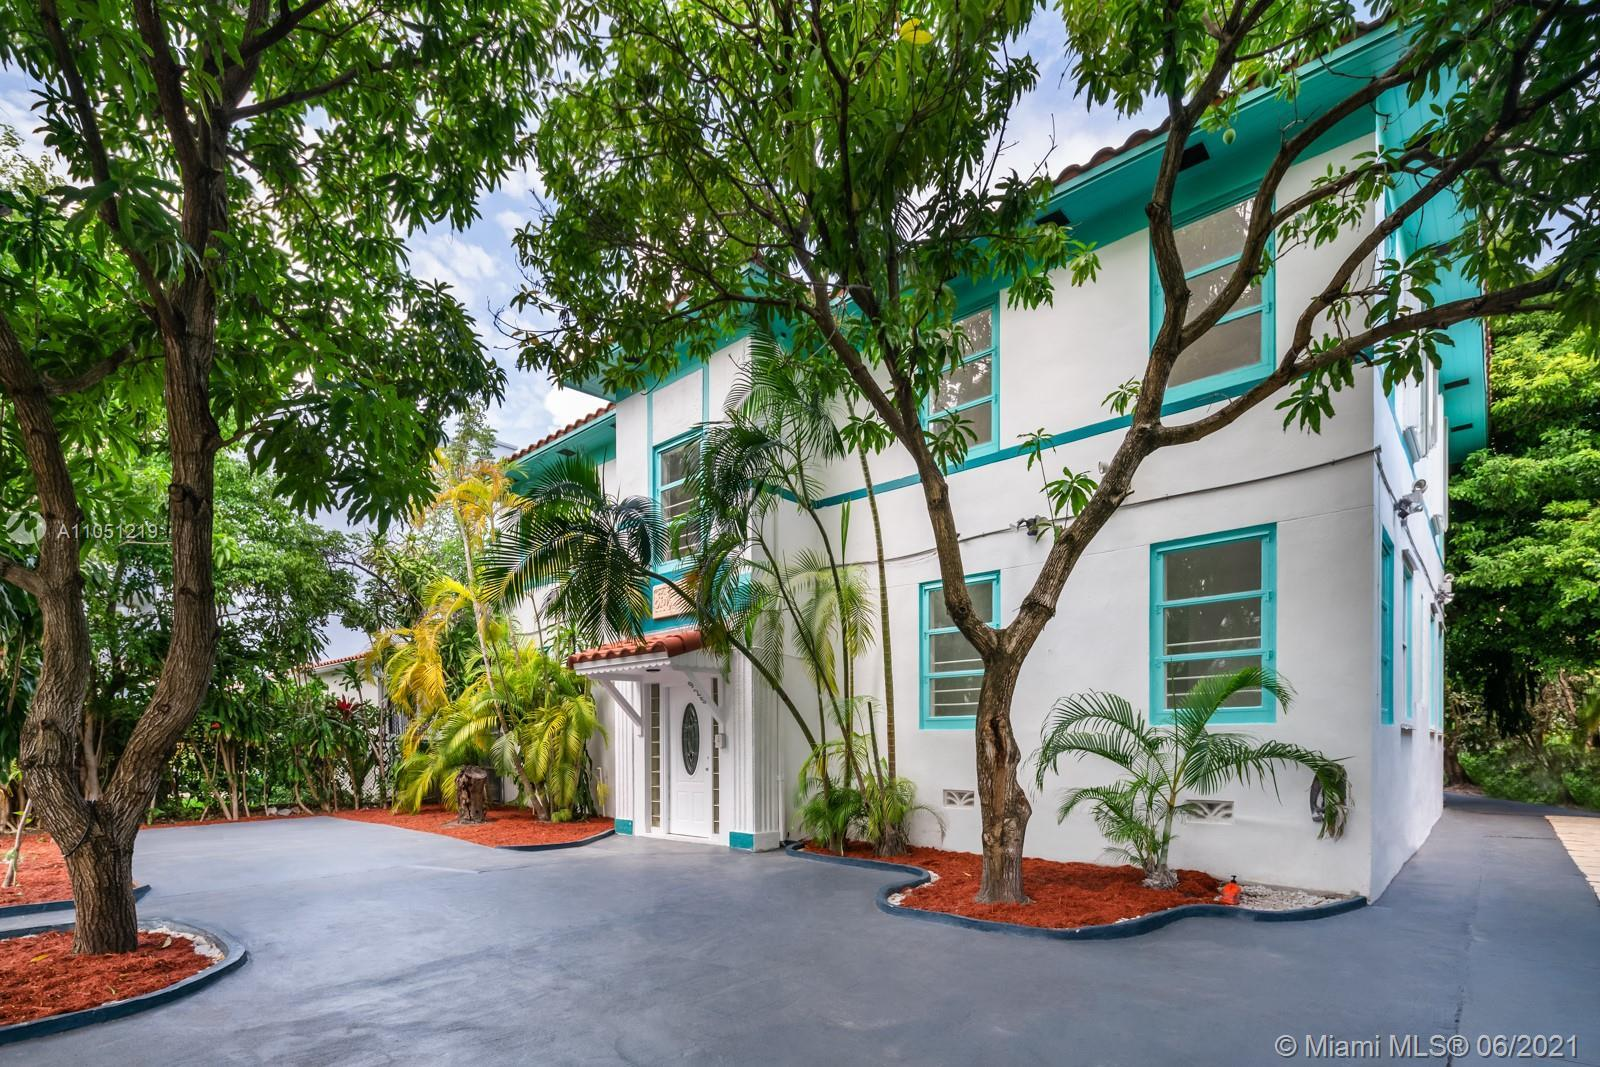 This exclusive Art-Deco inspired residence is a unique development opportunity in the heart of Miami